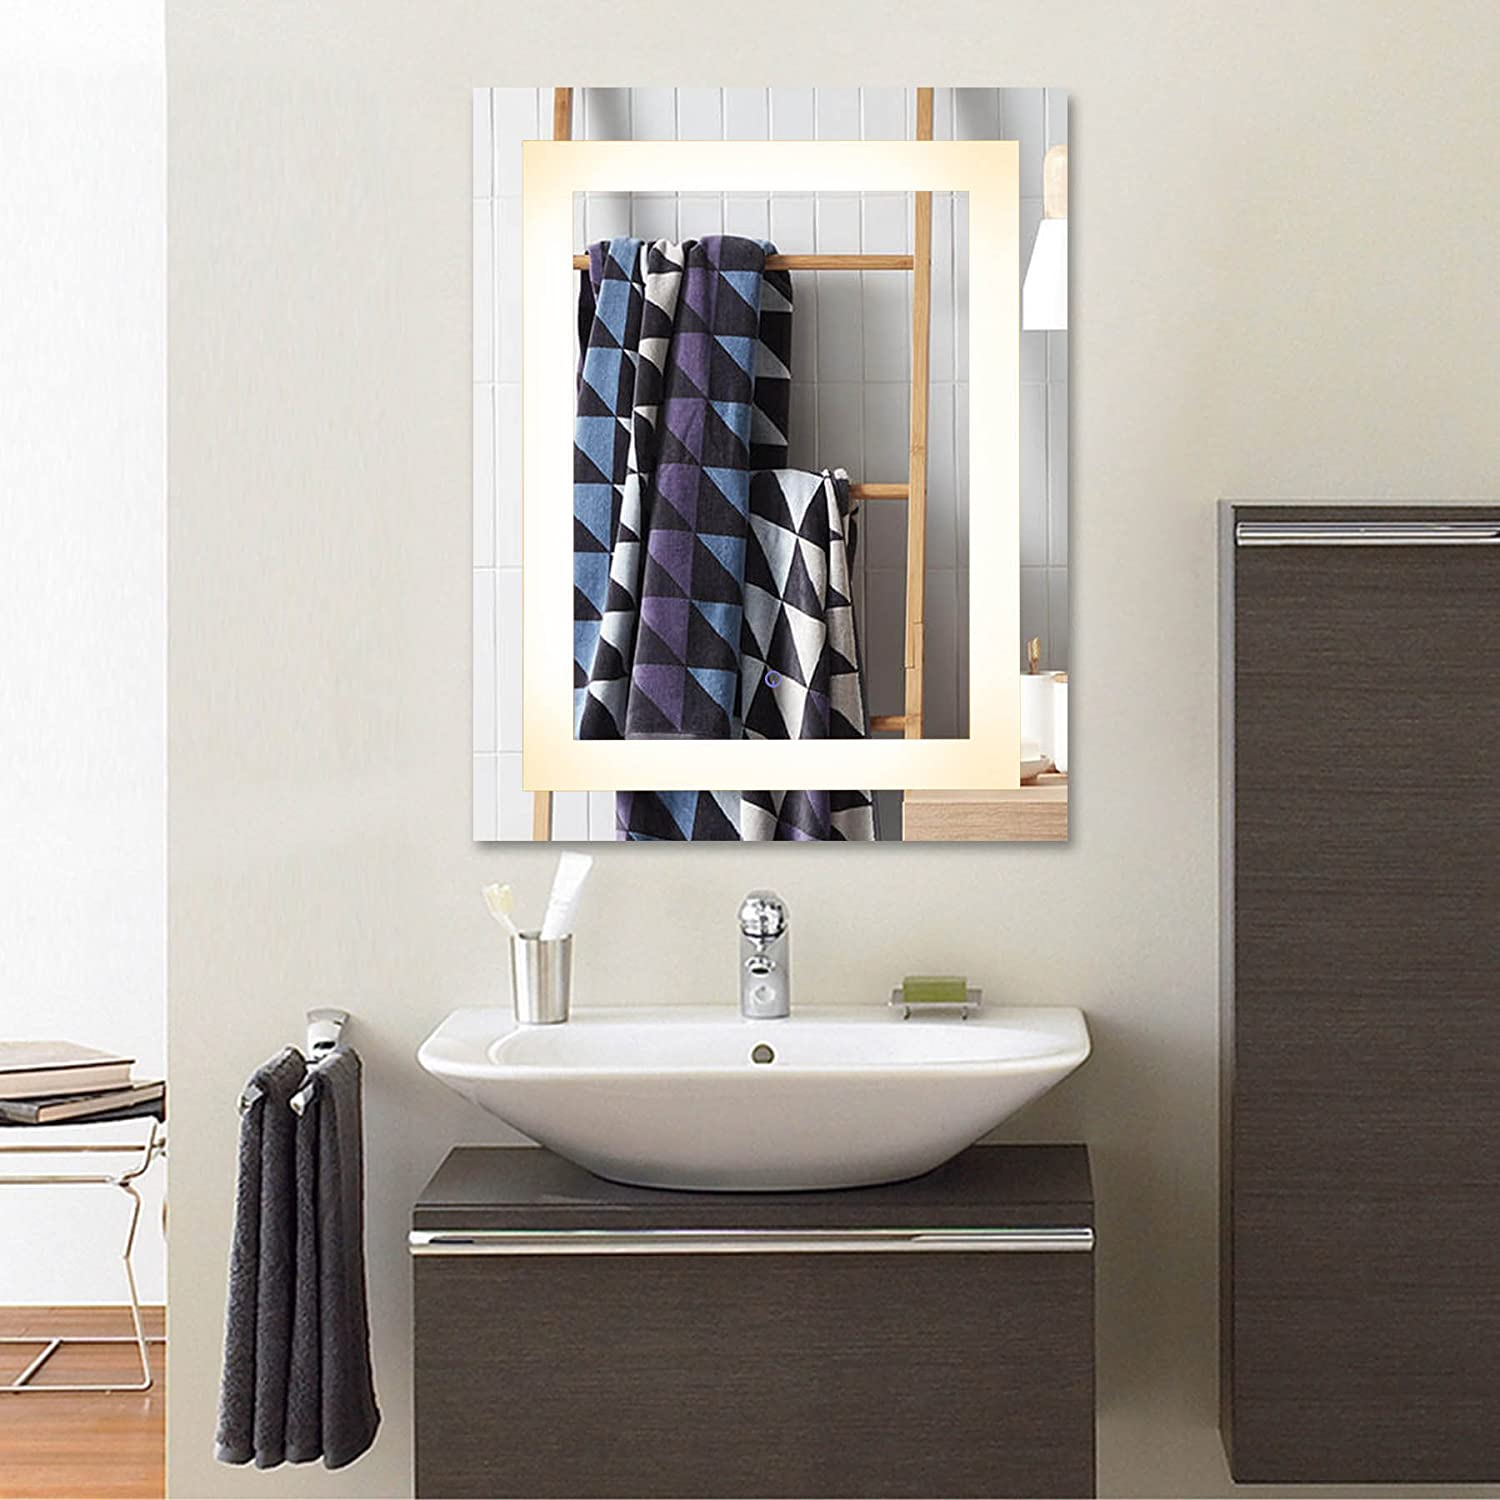 Awesome Co Z Wall Mounted Led Mirrors Modern Led Lighted Bathroom Mirror Dimmable Rectangle Touch Wall Mirror With Dimmer Lights Contemporary Light Up Beutiful Home Inspiration Xortanetmahrainfo